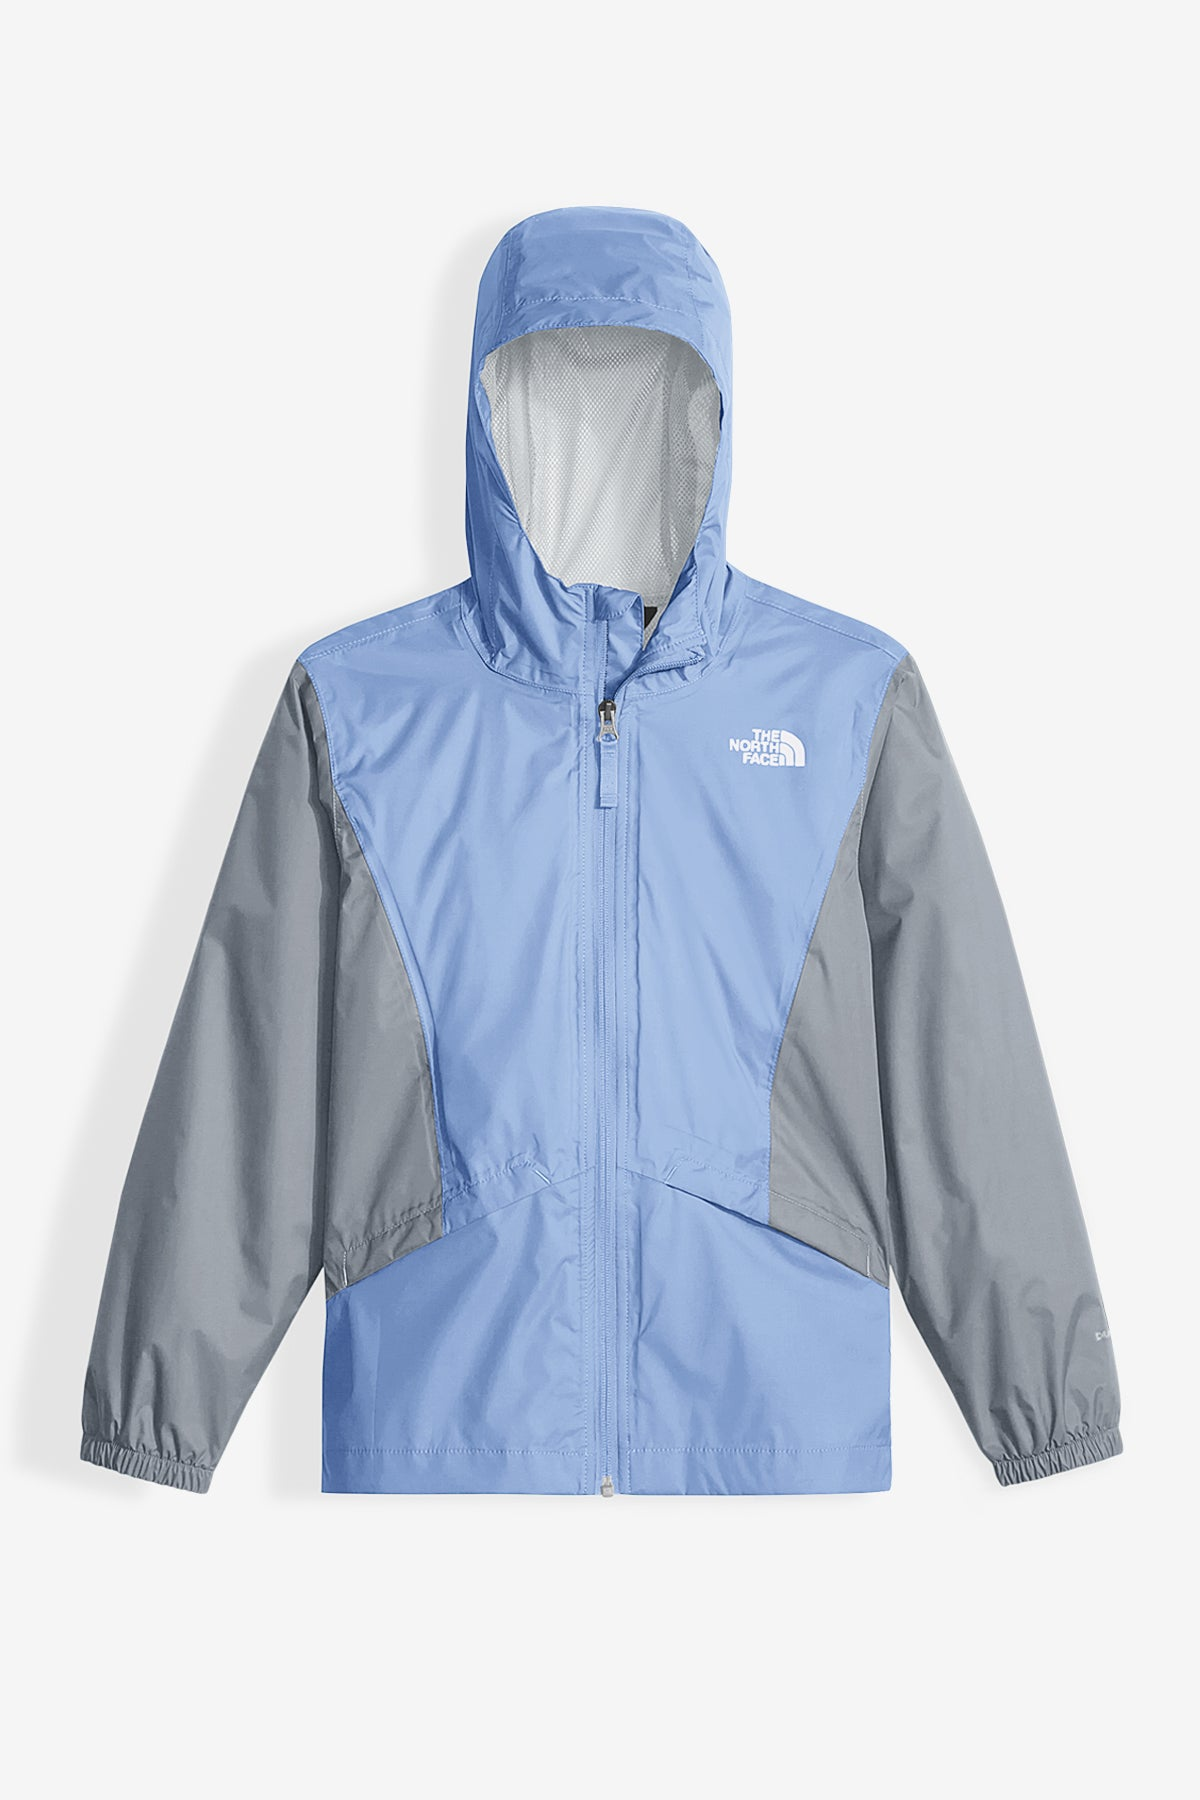 22c4d8b5 +Menu. Home; Girls · Boys · Baby Girls · Baby Boys · Shoes · The North Face  Girls' Zipline Rain Jacket ...